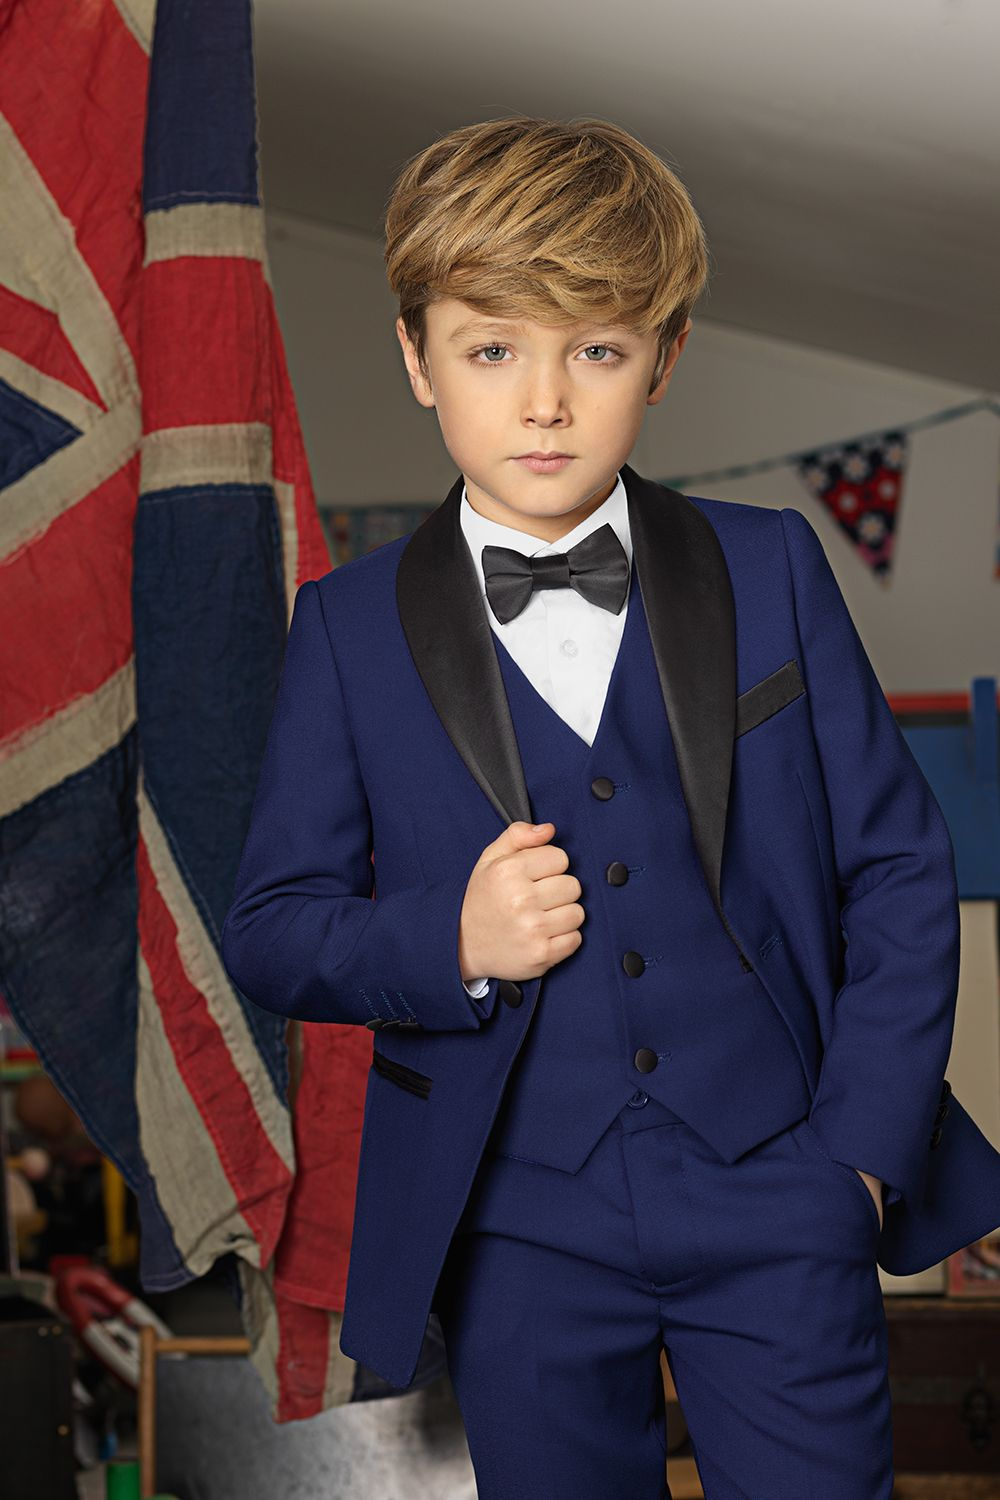 Kids Tailored Fit Wedding Suits 6 Piece Page Boys Prom Charcoal Grey Navy Blue